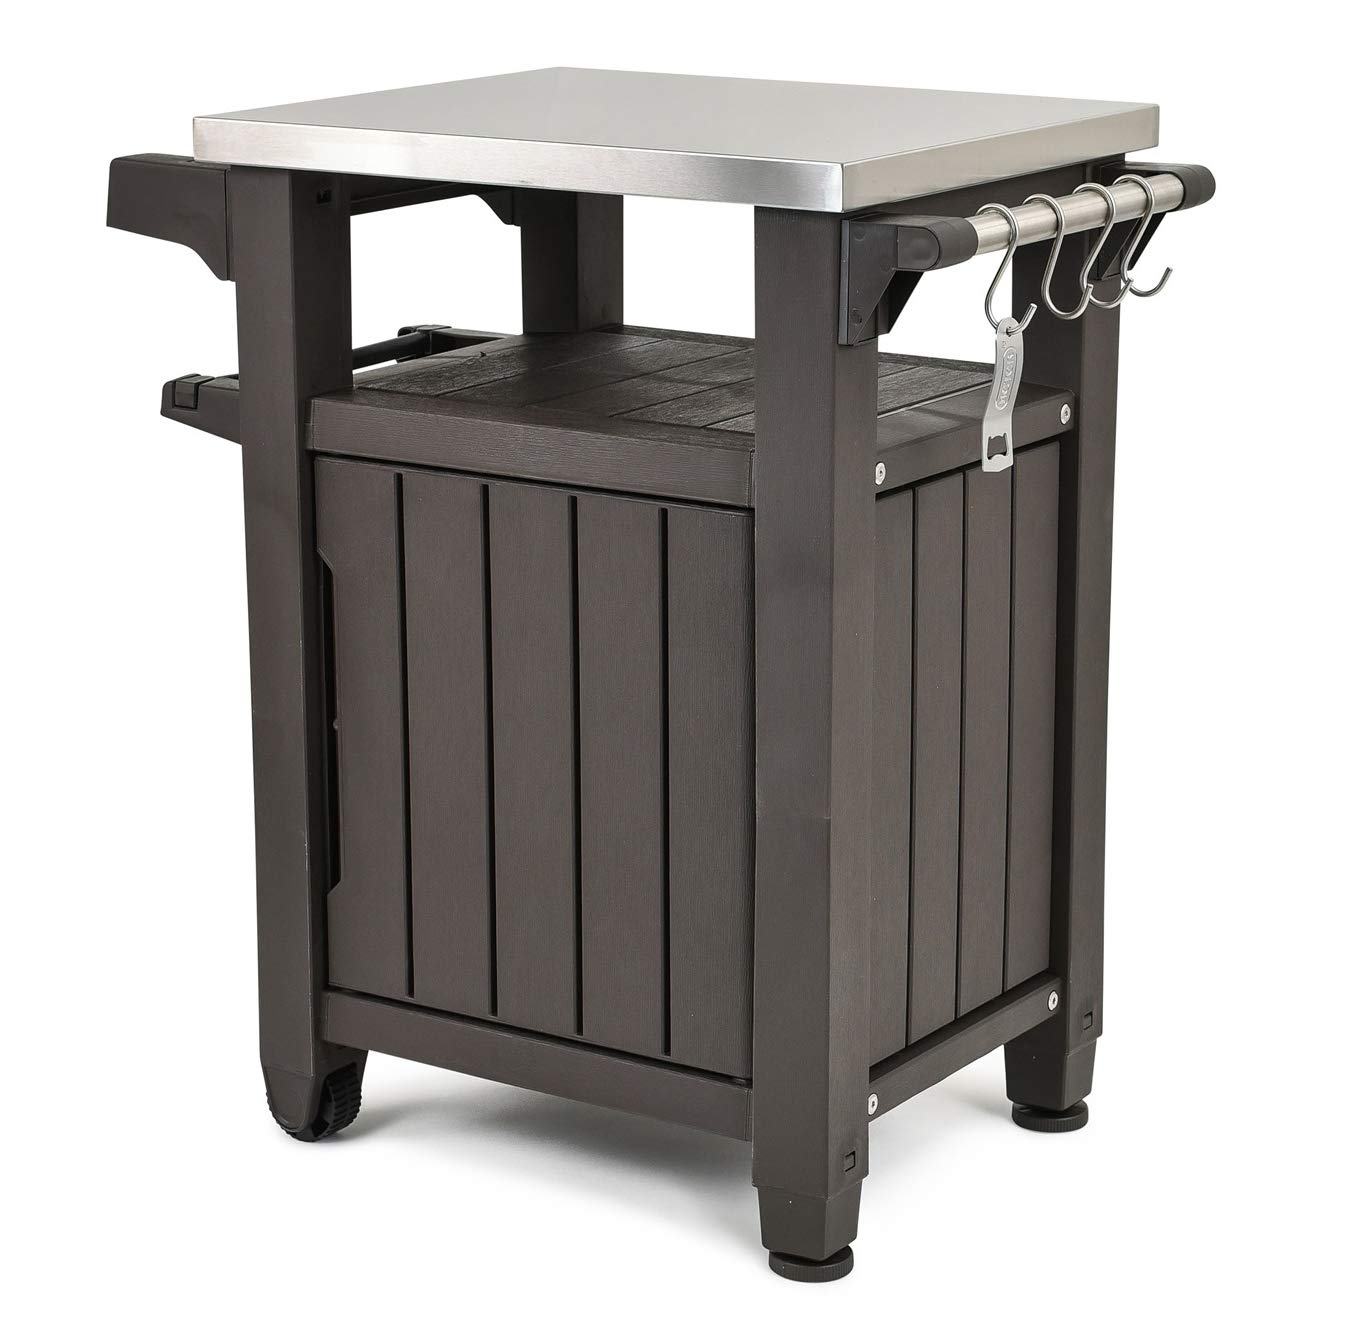 STS SUPPLIES LTD Resin Patio Service Station BBQ Prep Station Serving Work Grill Outdoor Grilling Storage On Wheels Side Rolling Furniture & E Book by Easy2Find.